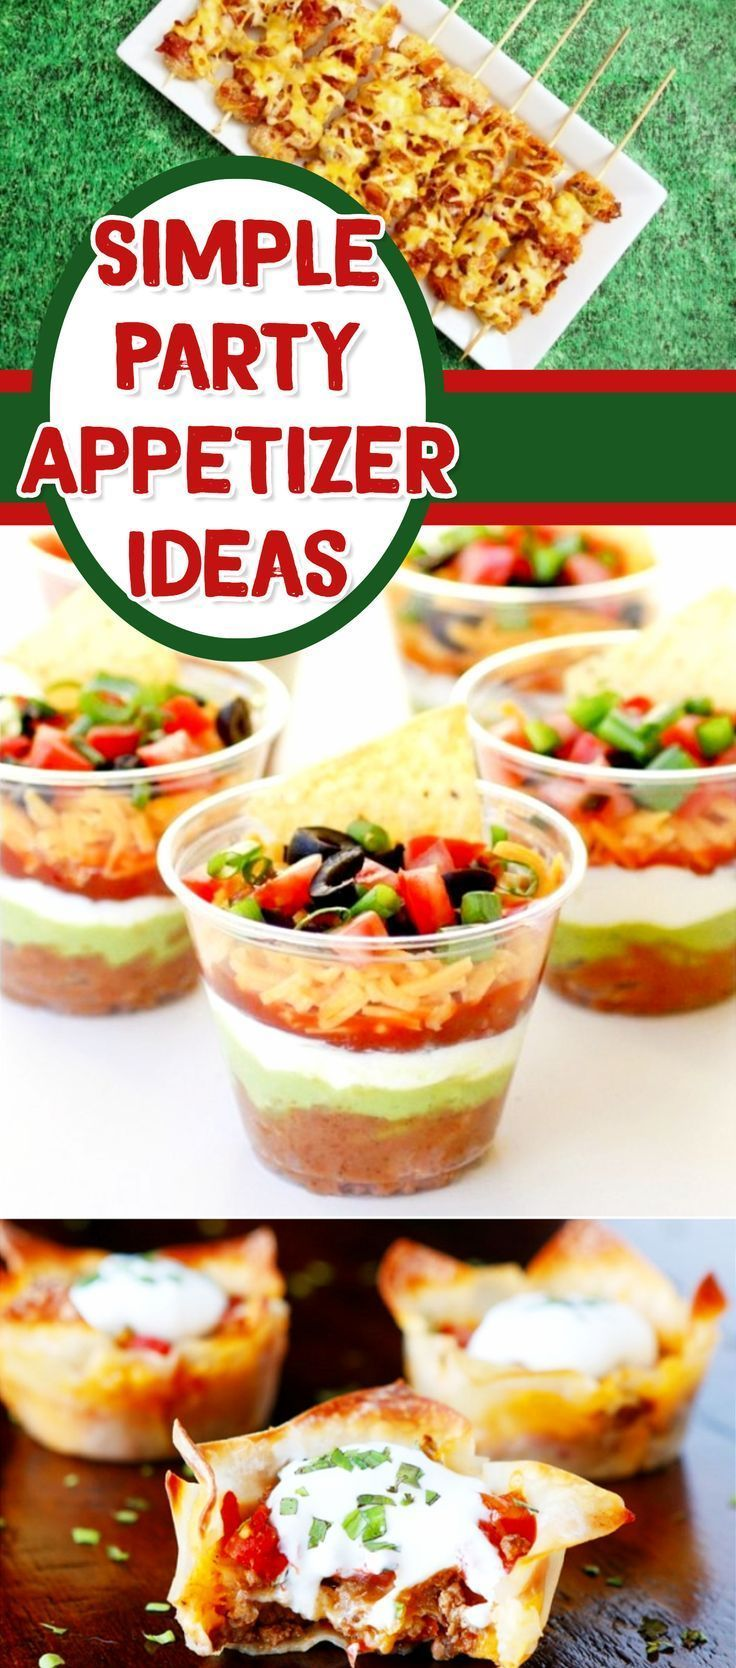 PARTY APPETIZERS -  easy appetizers for a crowd - appetizer recipes with pictures - easy appetizers finger foods #superbowlparty #superbowlpartyfood #footballpartyfood #easyappetizers #superbowl